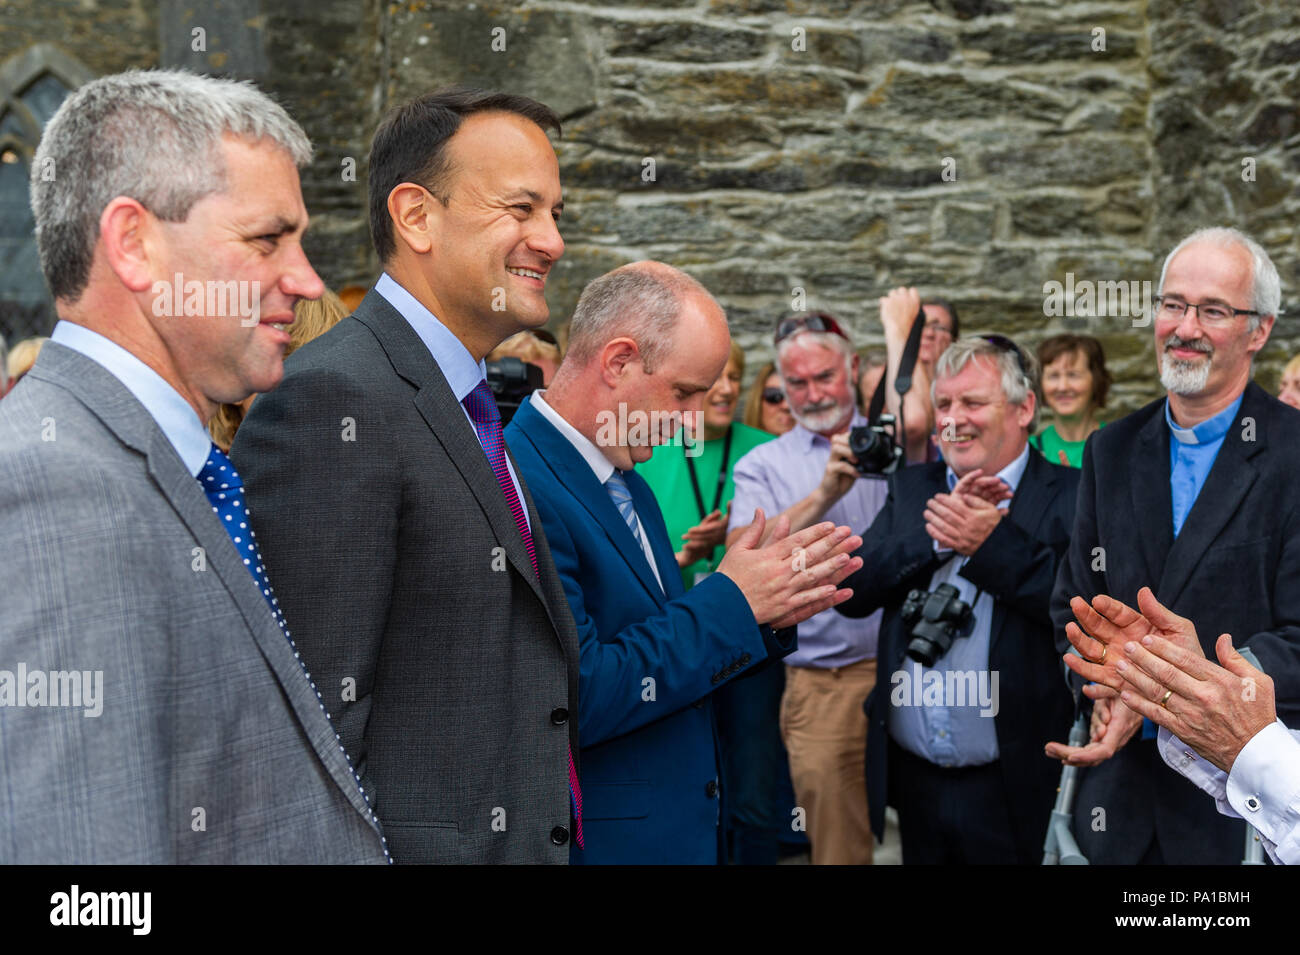 Dunmanway, West Cork, Ireland. 20th July, 2018. Taoiseach Leo Varadkar visited Dunmanway today to see the birthplace and final resting place of Sam Maguire. He also visited the Sam Maguire Bells in St. Mary's Church. Rev Cliff Jeffers, Rector of Fanlobbus Union, welcomed the Taoiseach to St. Mary's Church. Credit: Andy Gibson/Alamy Live News. - Stock Image